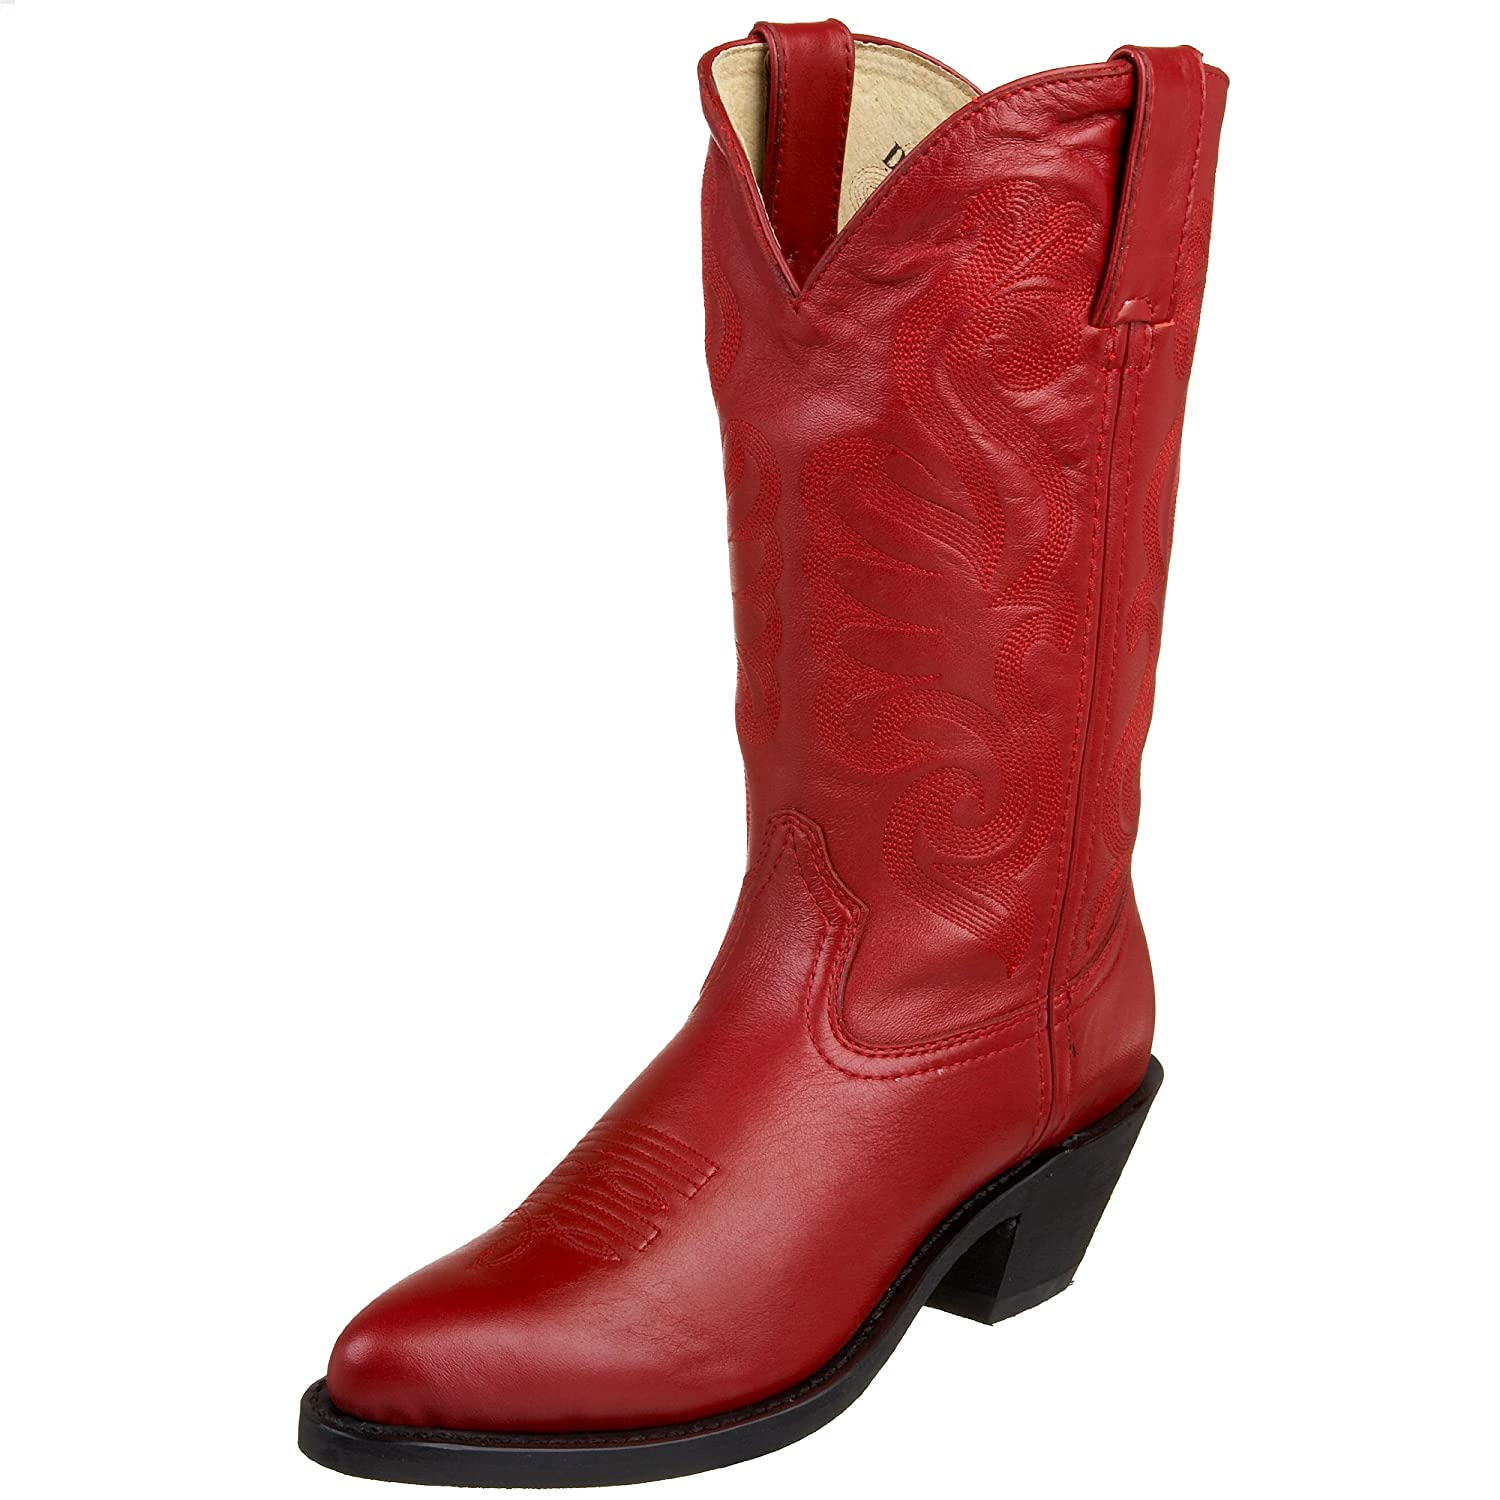 Perfect Womens High Heel Red Faux Suede Ankle Shoe Boots Amazoncouk Shoes